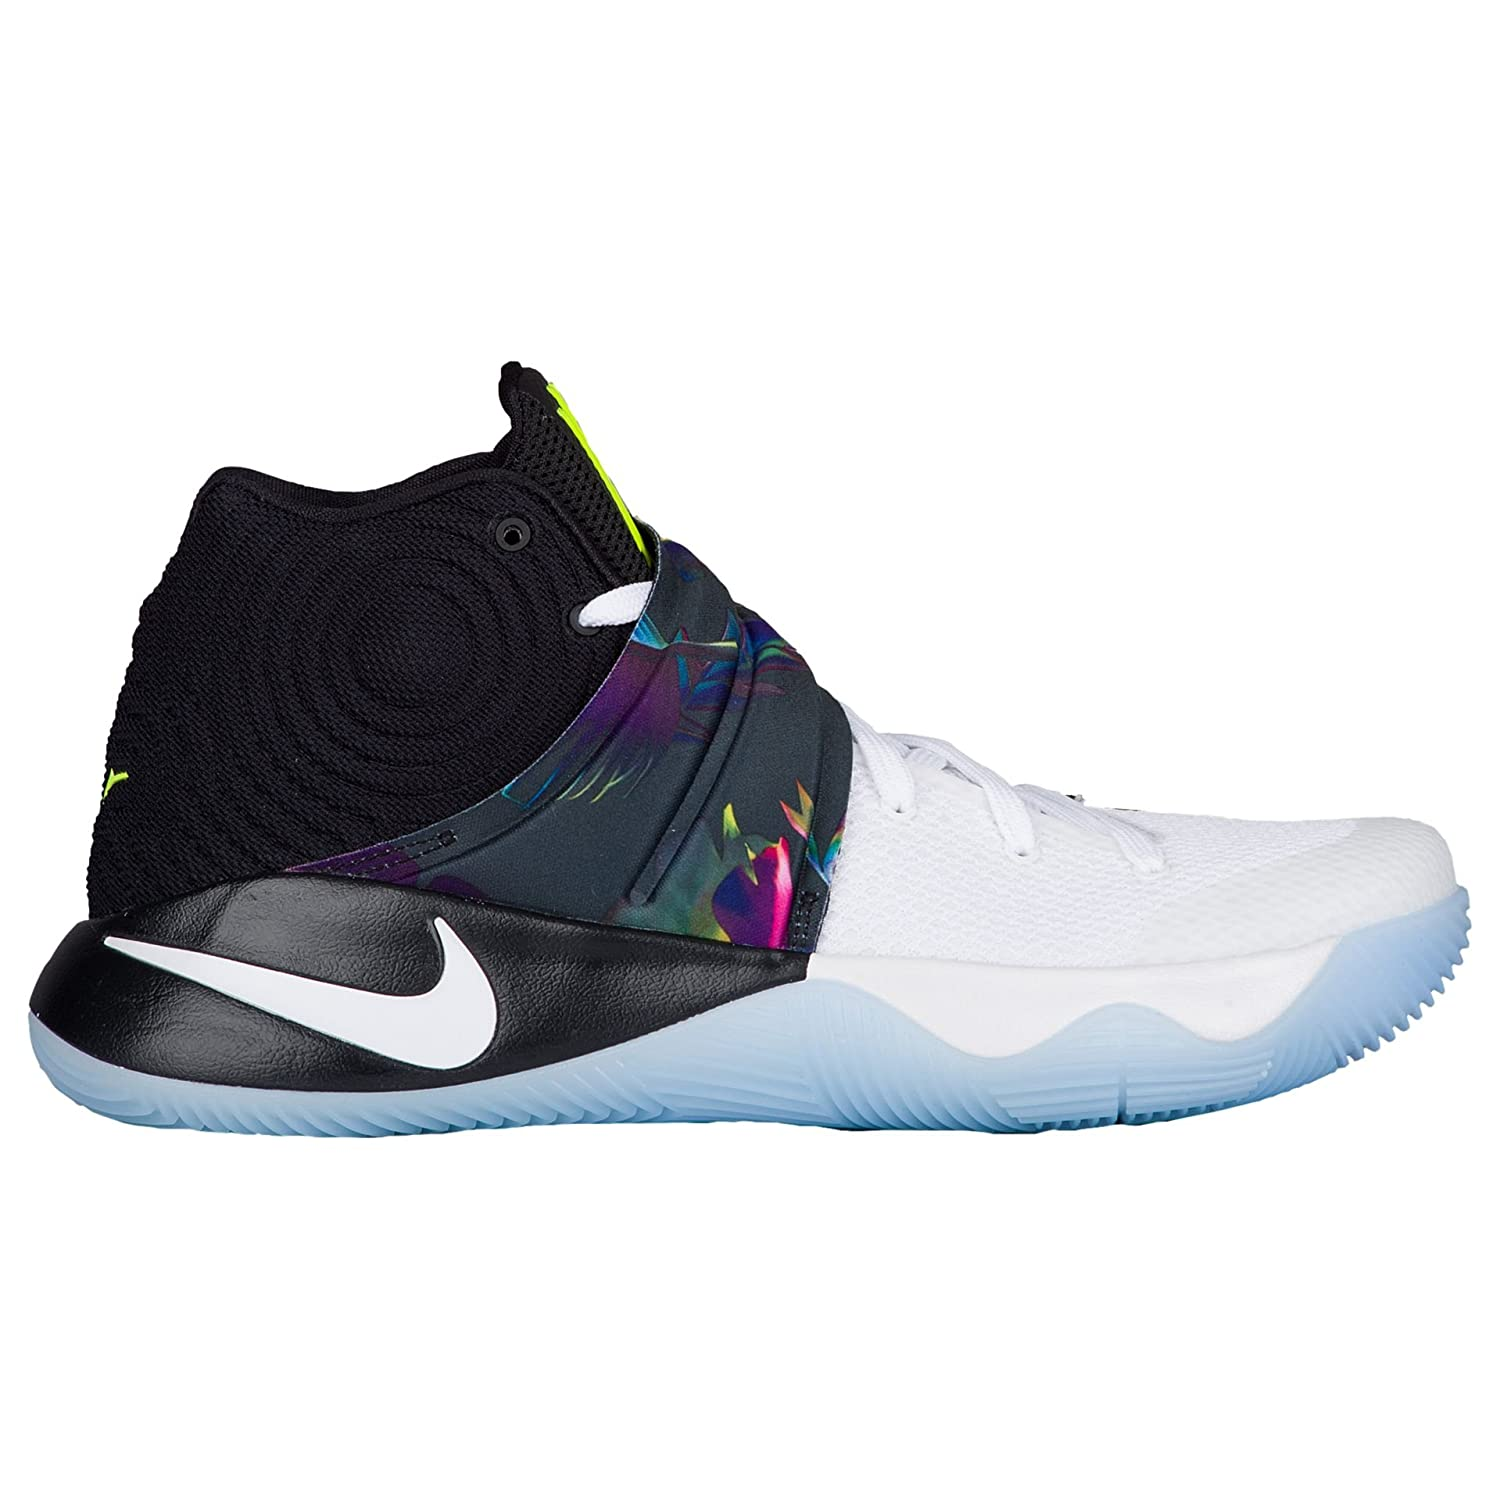 new arrival 2ce64 08990 Nike Kyrie 2 Basketball Shoes (15 D(M) US)